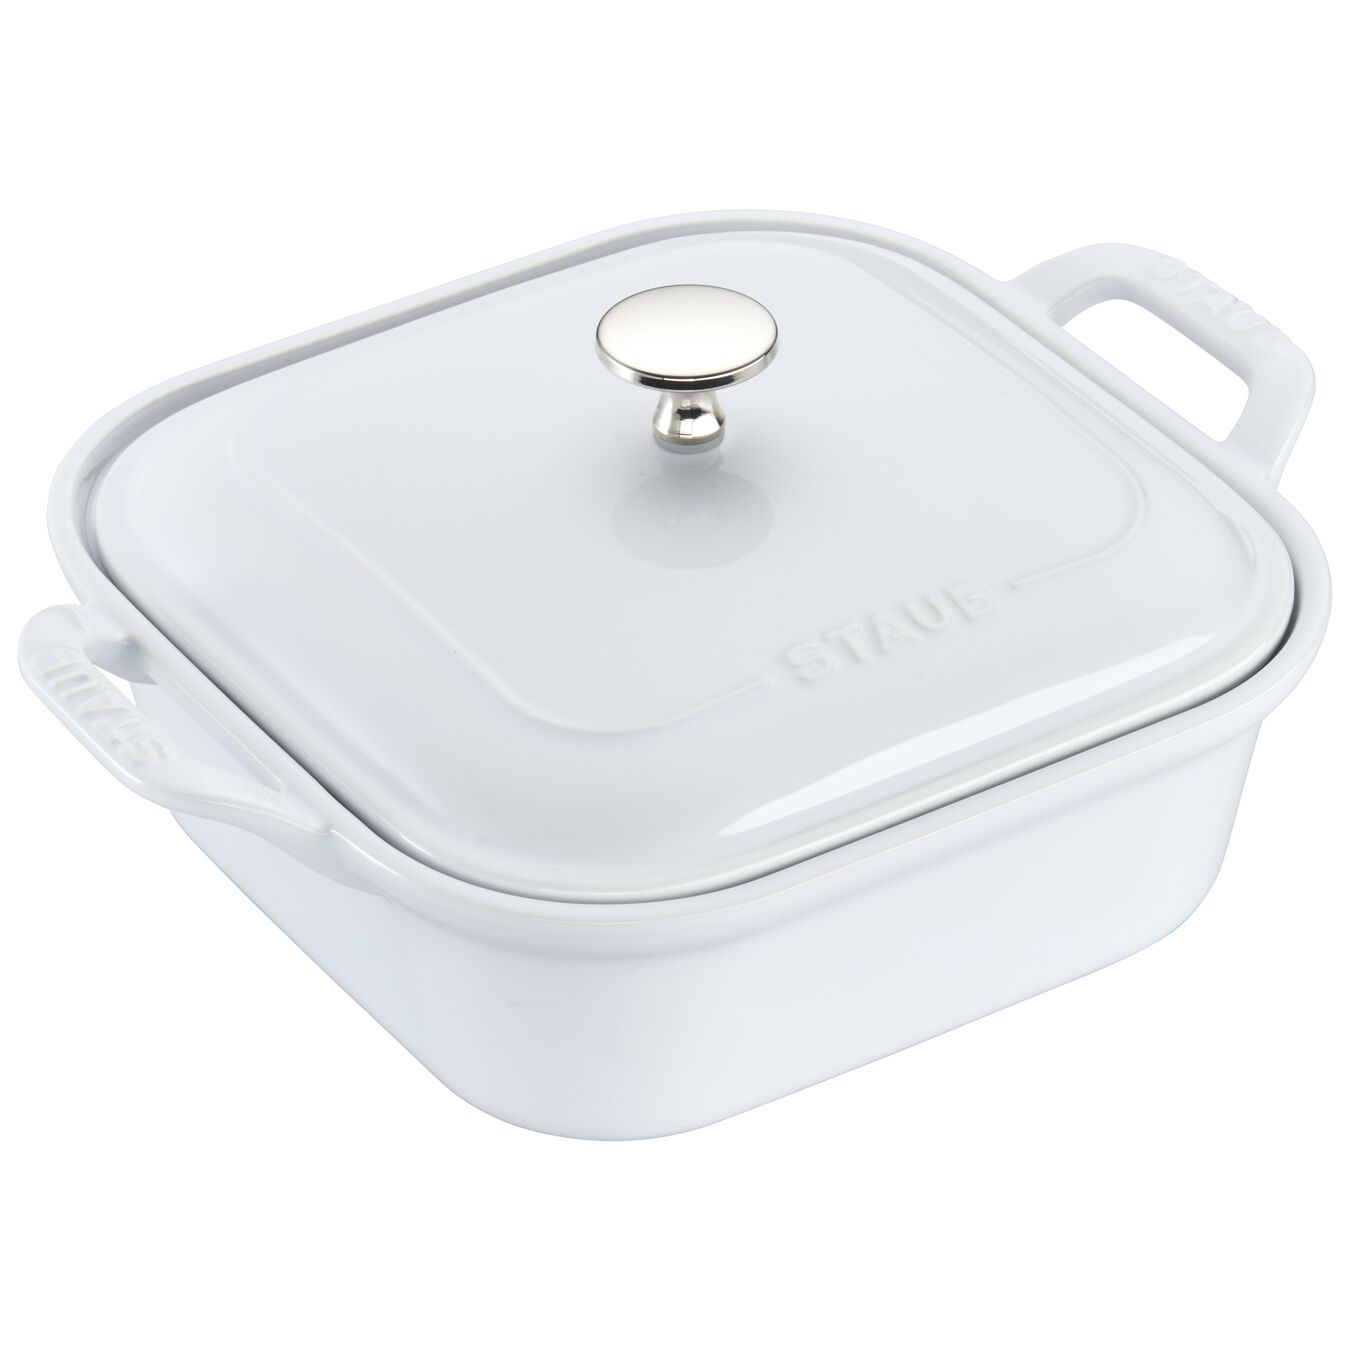 9-inch, square, Covered Baking Dish, white,,large 1